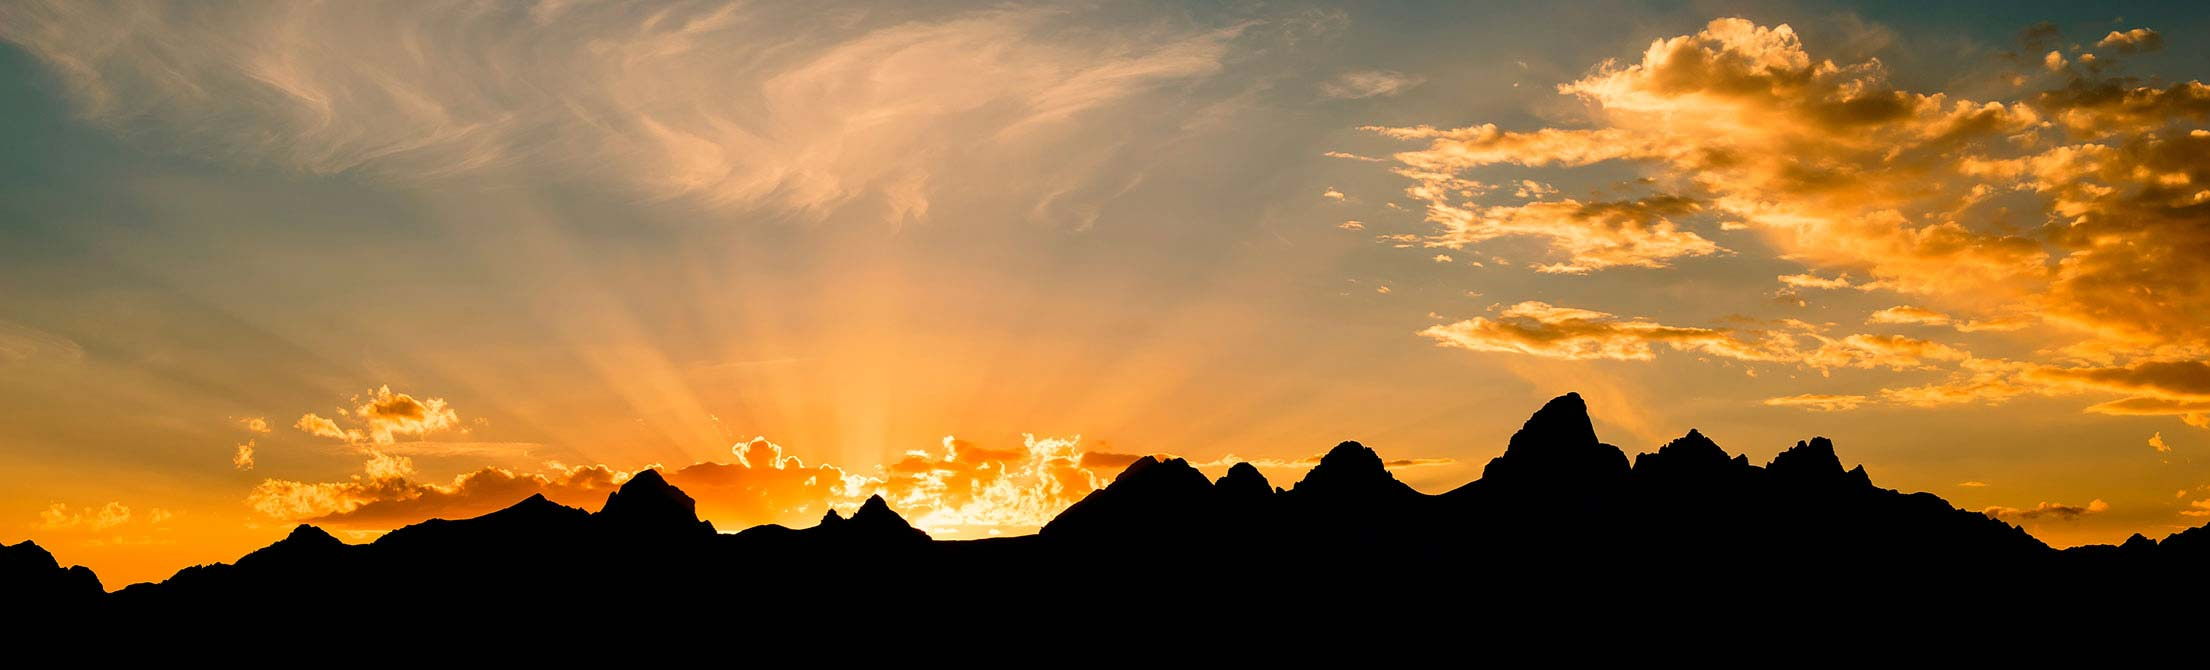 sun setting behind the tetons; mountains in silhouette